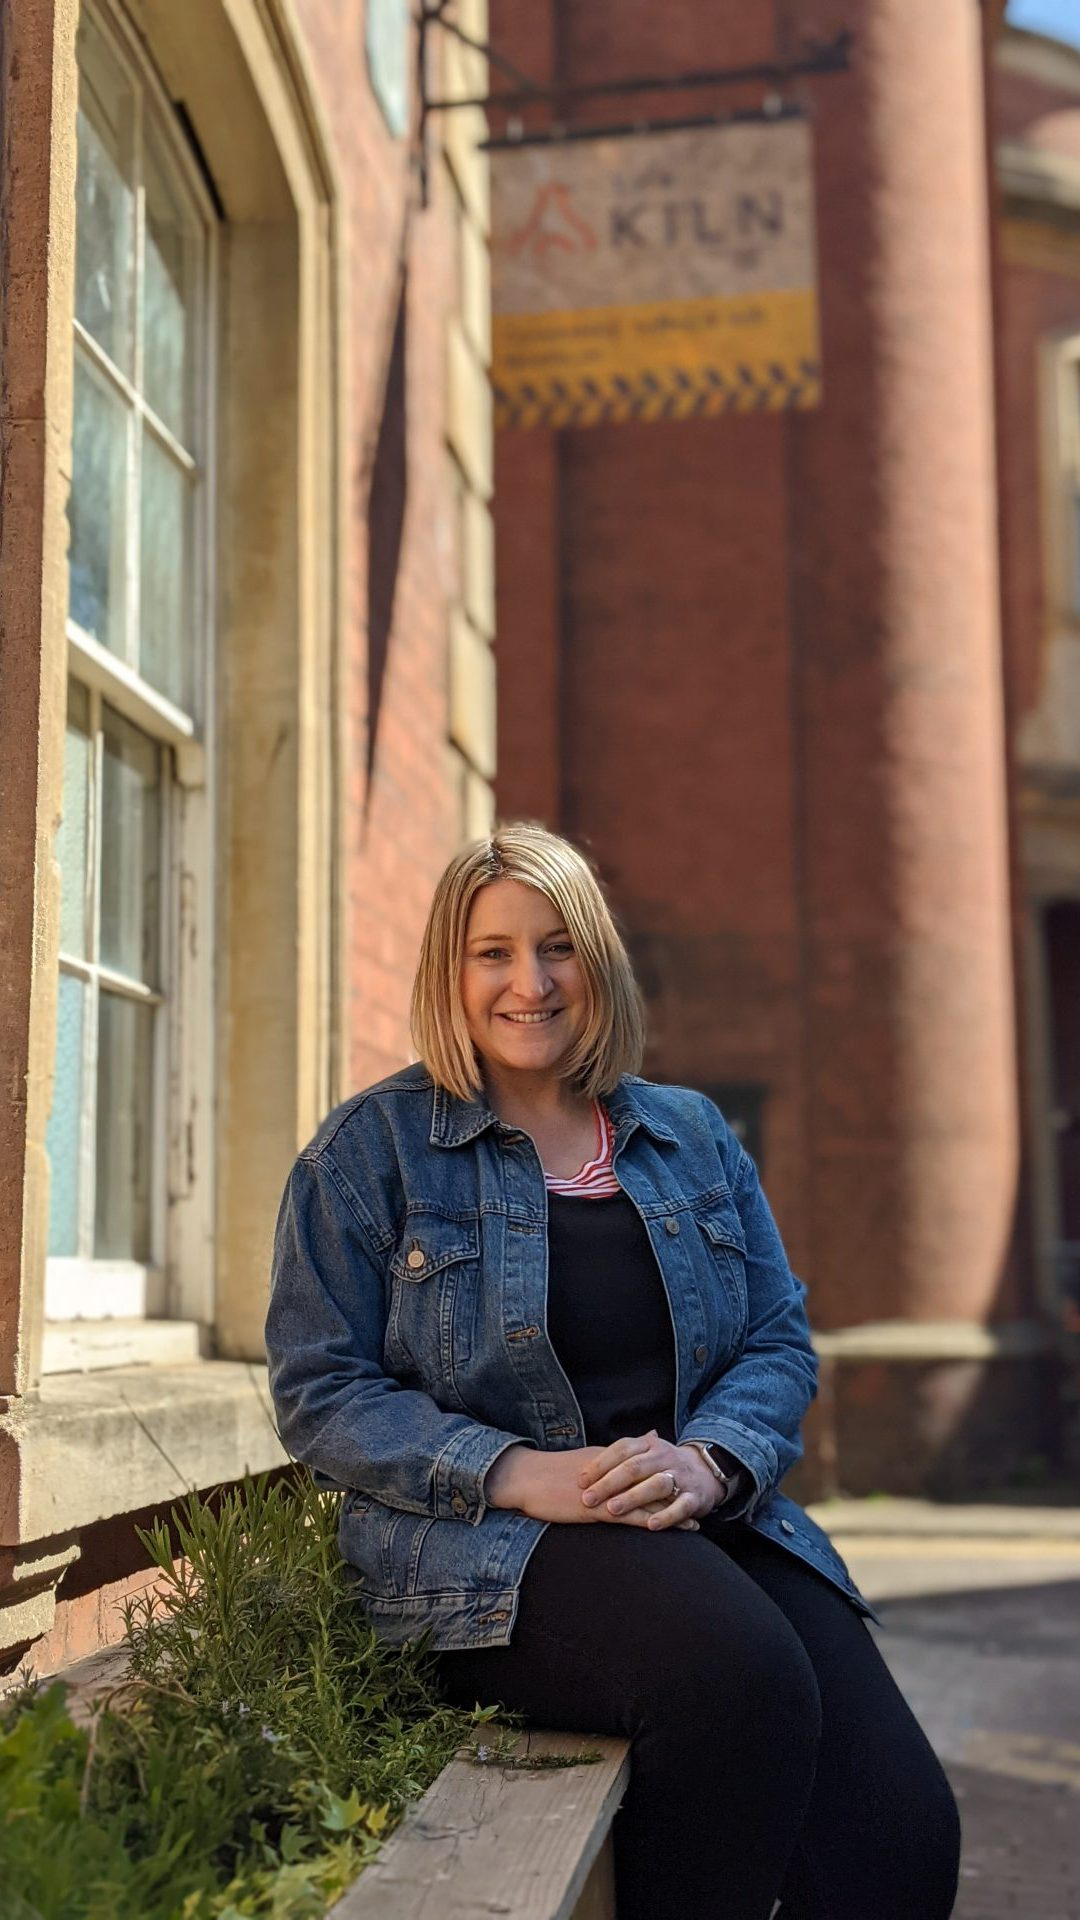 Worcester Coworking Space Re-Opens to Support Local Small Businesses and Entrepreneurs